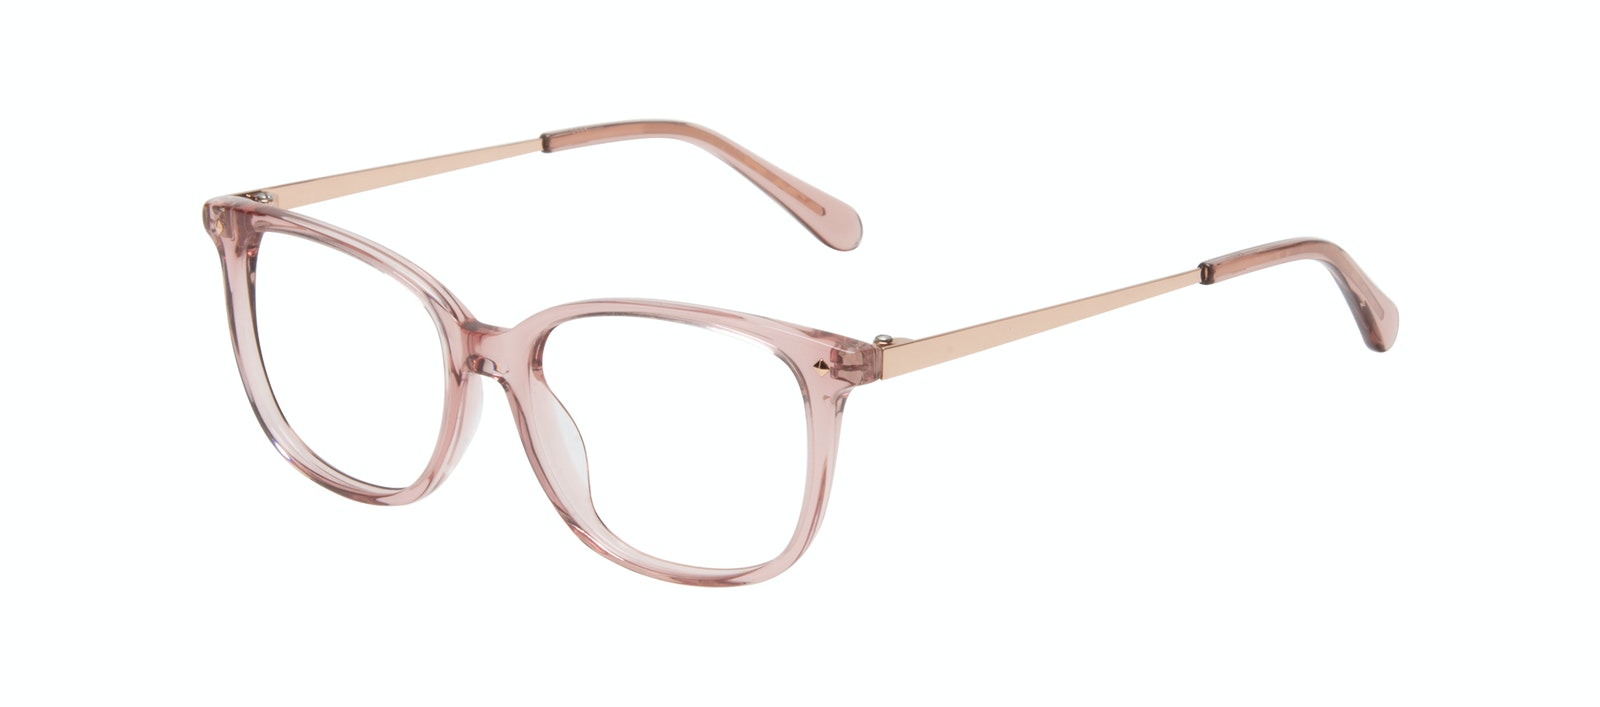 Affordable Fashion Glasses Square Eyeglasses Women Refine Petite Rose Tilt